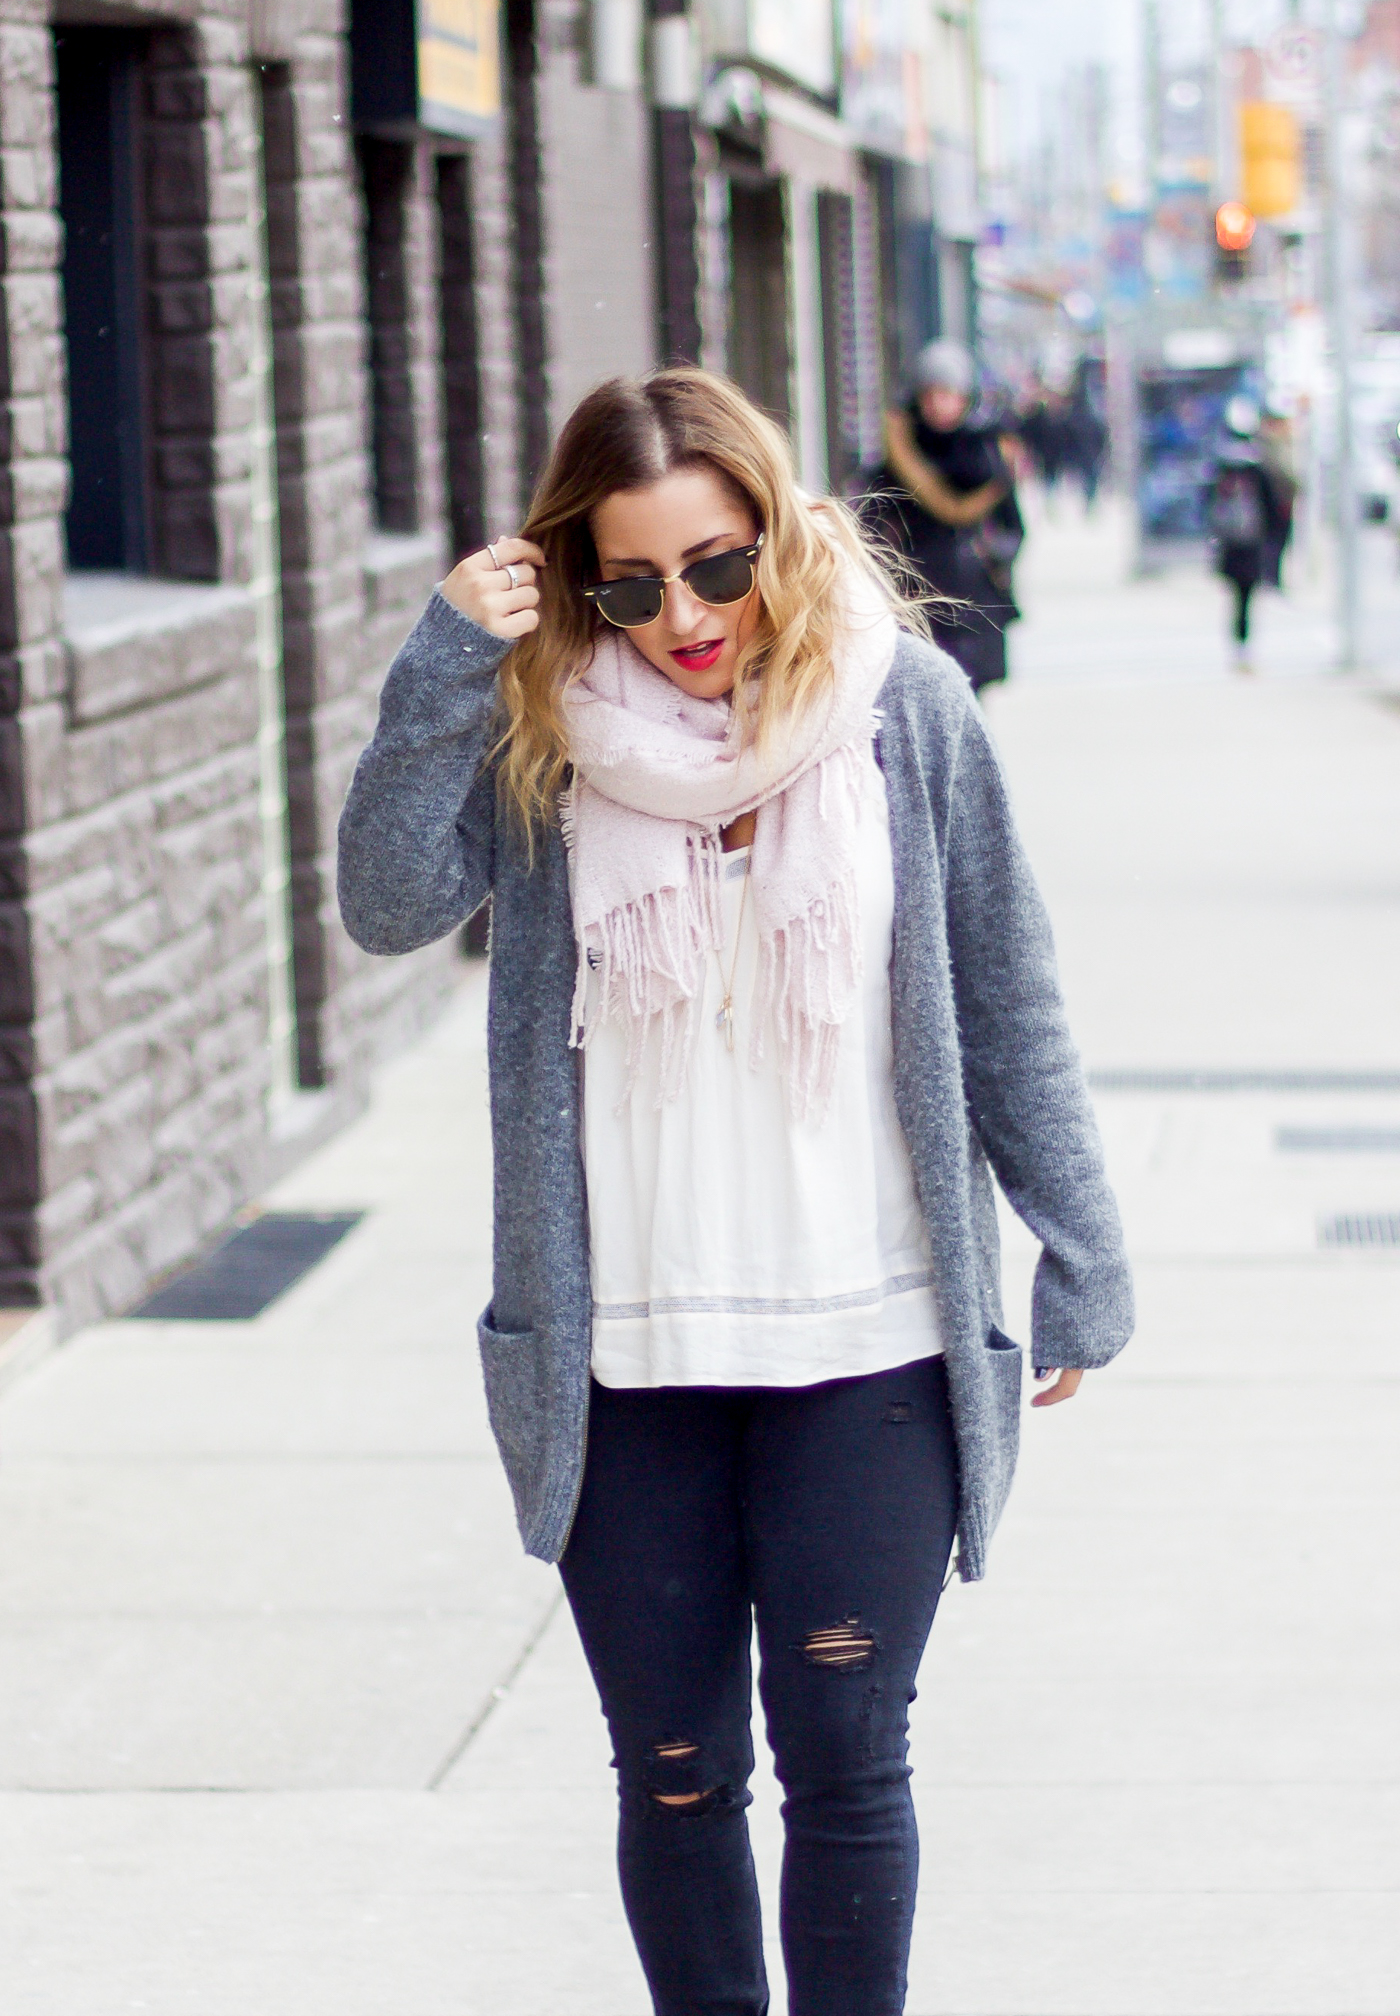 Jackie Goldhar is a Toronto-based fashion and lifestyle blogger, wearing a winter cardigan from Old Navy